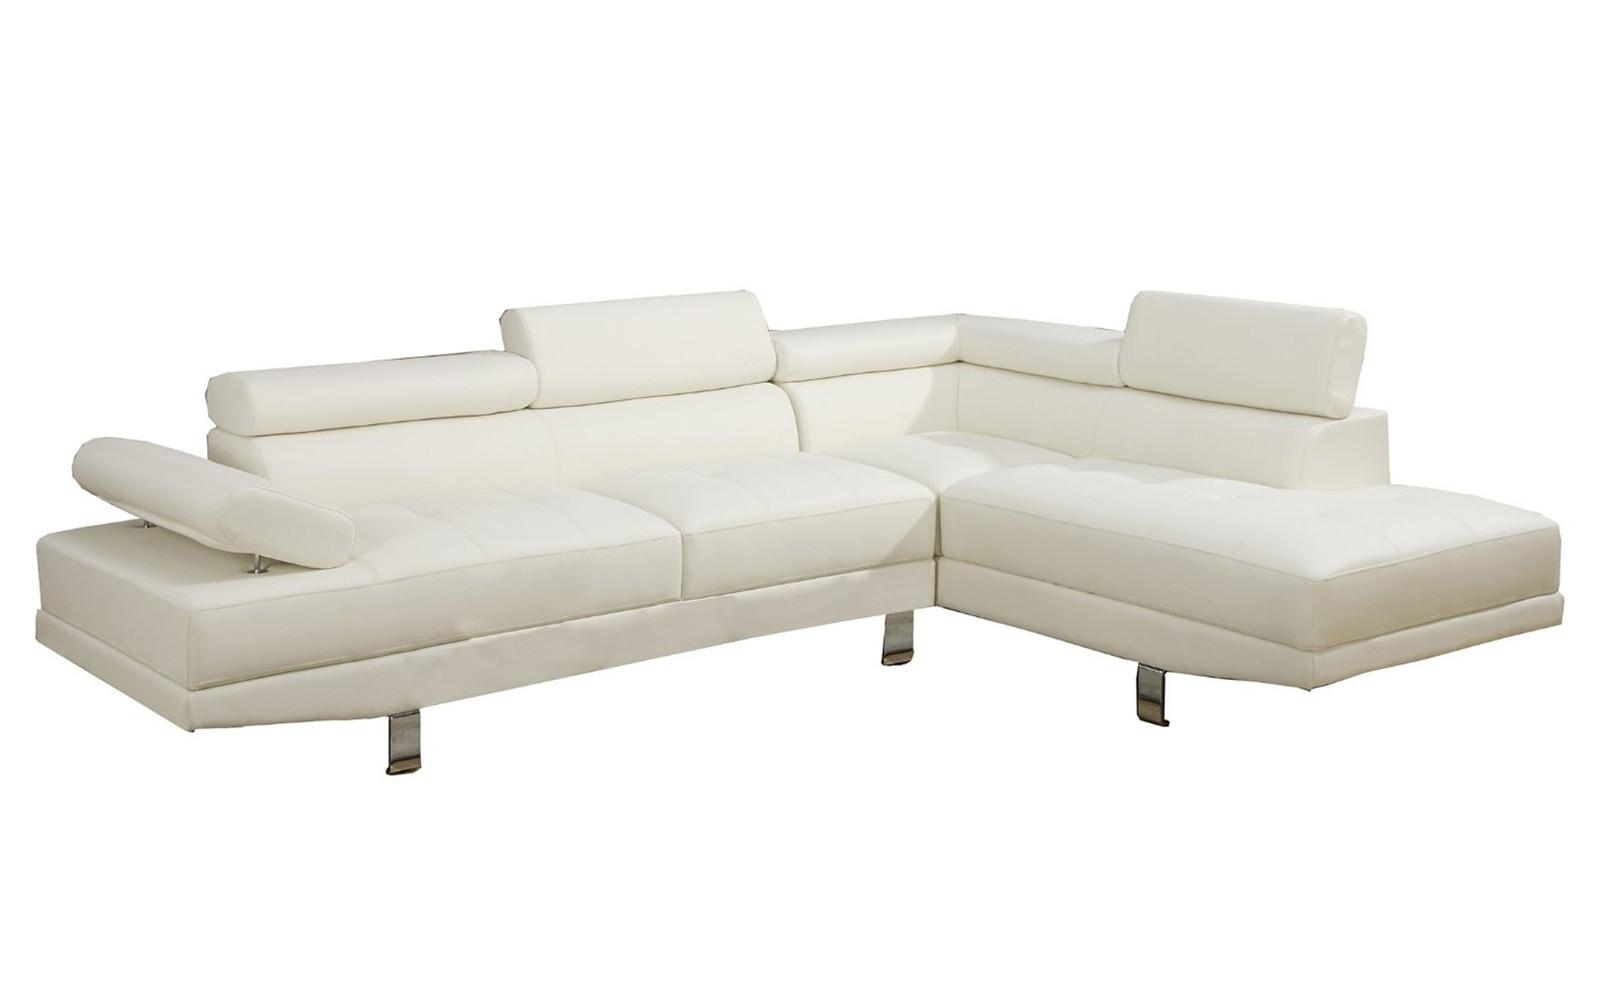 2 Piece Modern Bonded Leather Right Facing Chaise Sectional Sofa Throughout Sectional Sofa With 2 Chaises (View 15 of 20)